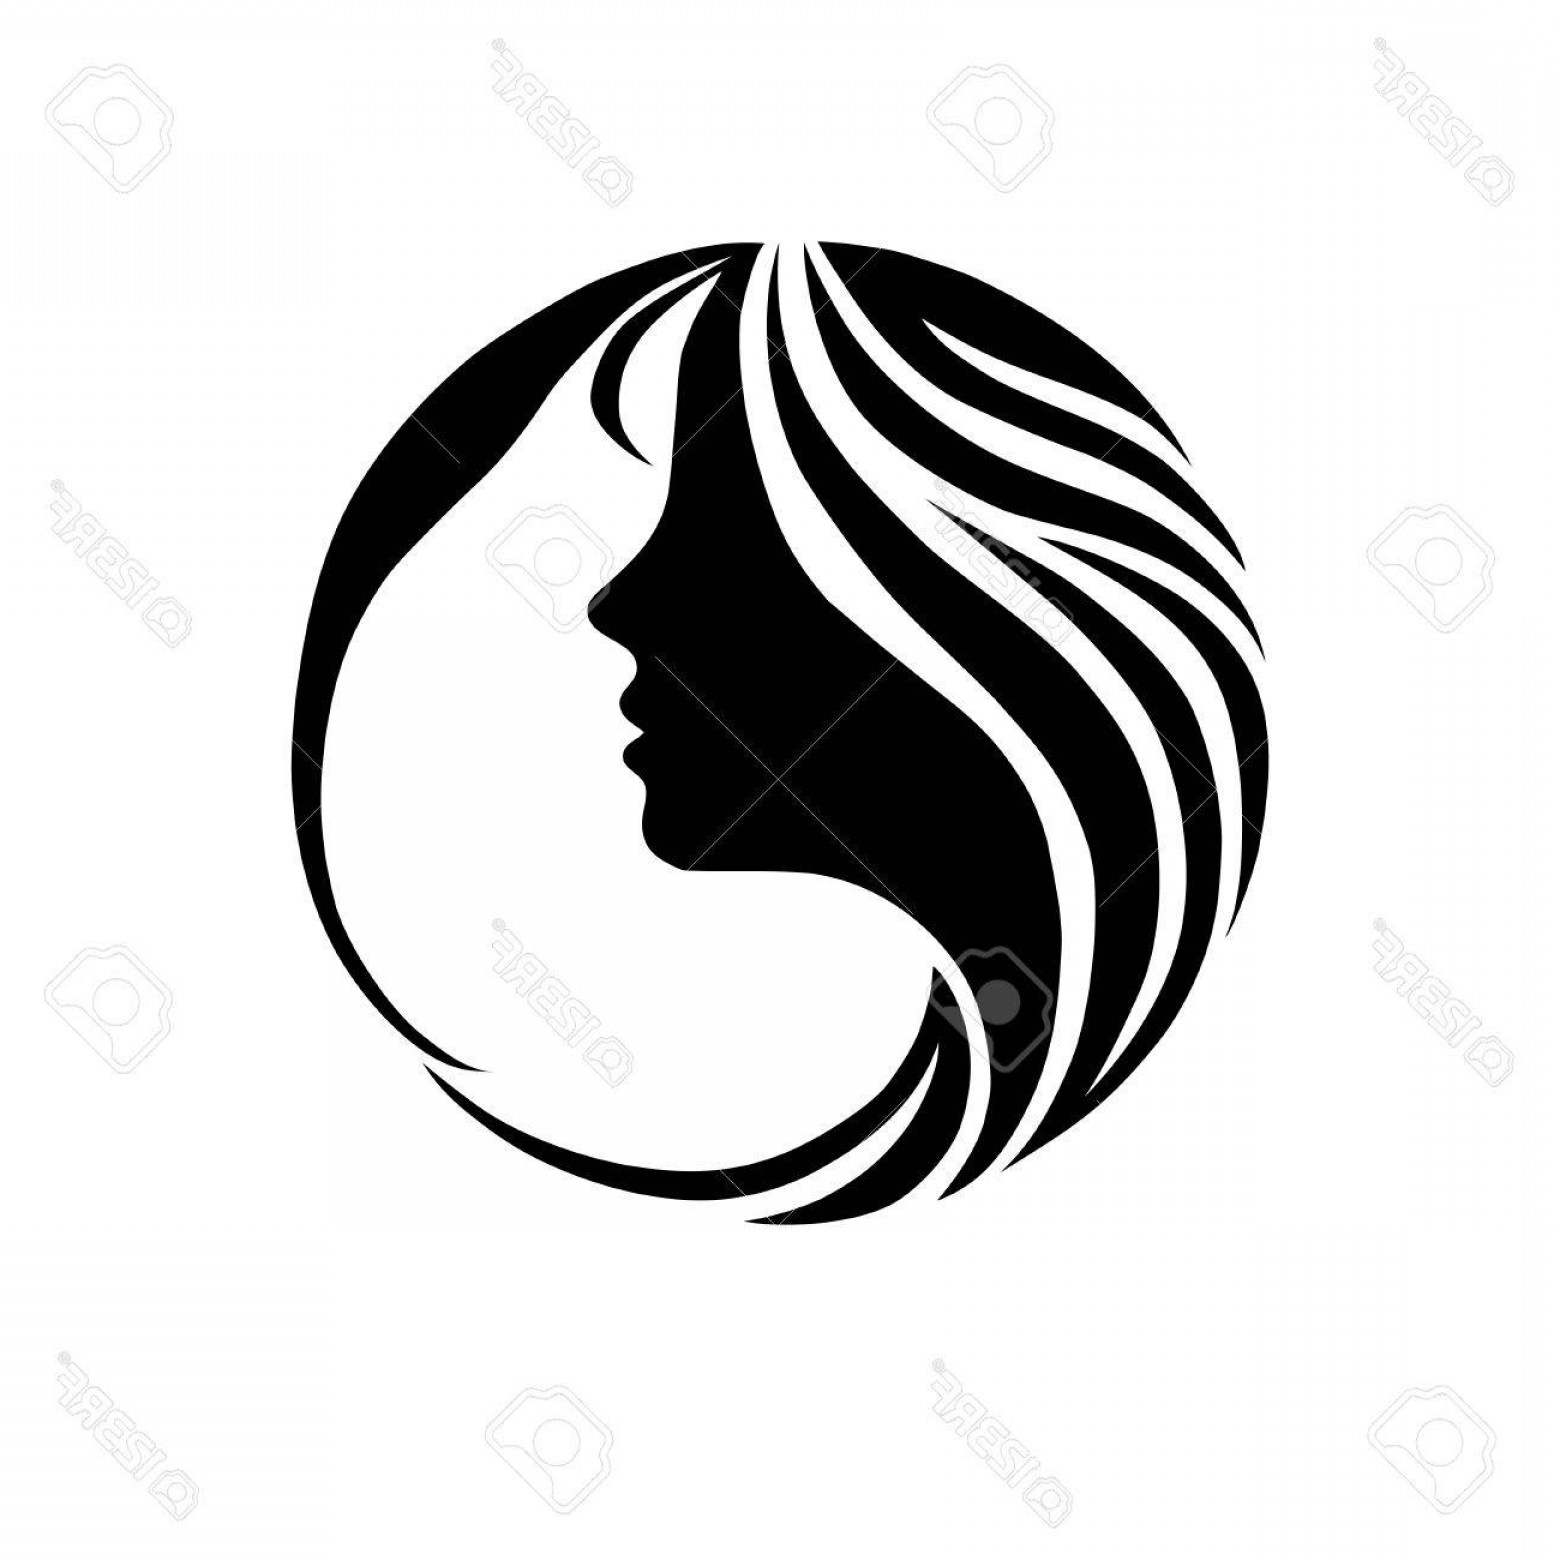 Girl Face Vector Art Black And White: Photostock Vector Beautiful Girl Face Fashion Icon In Black And White